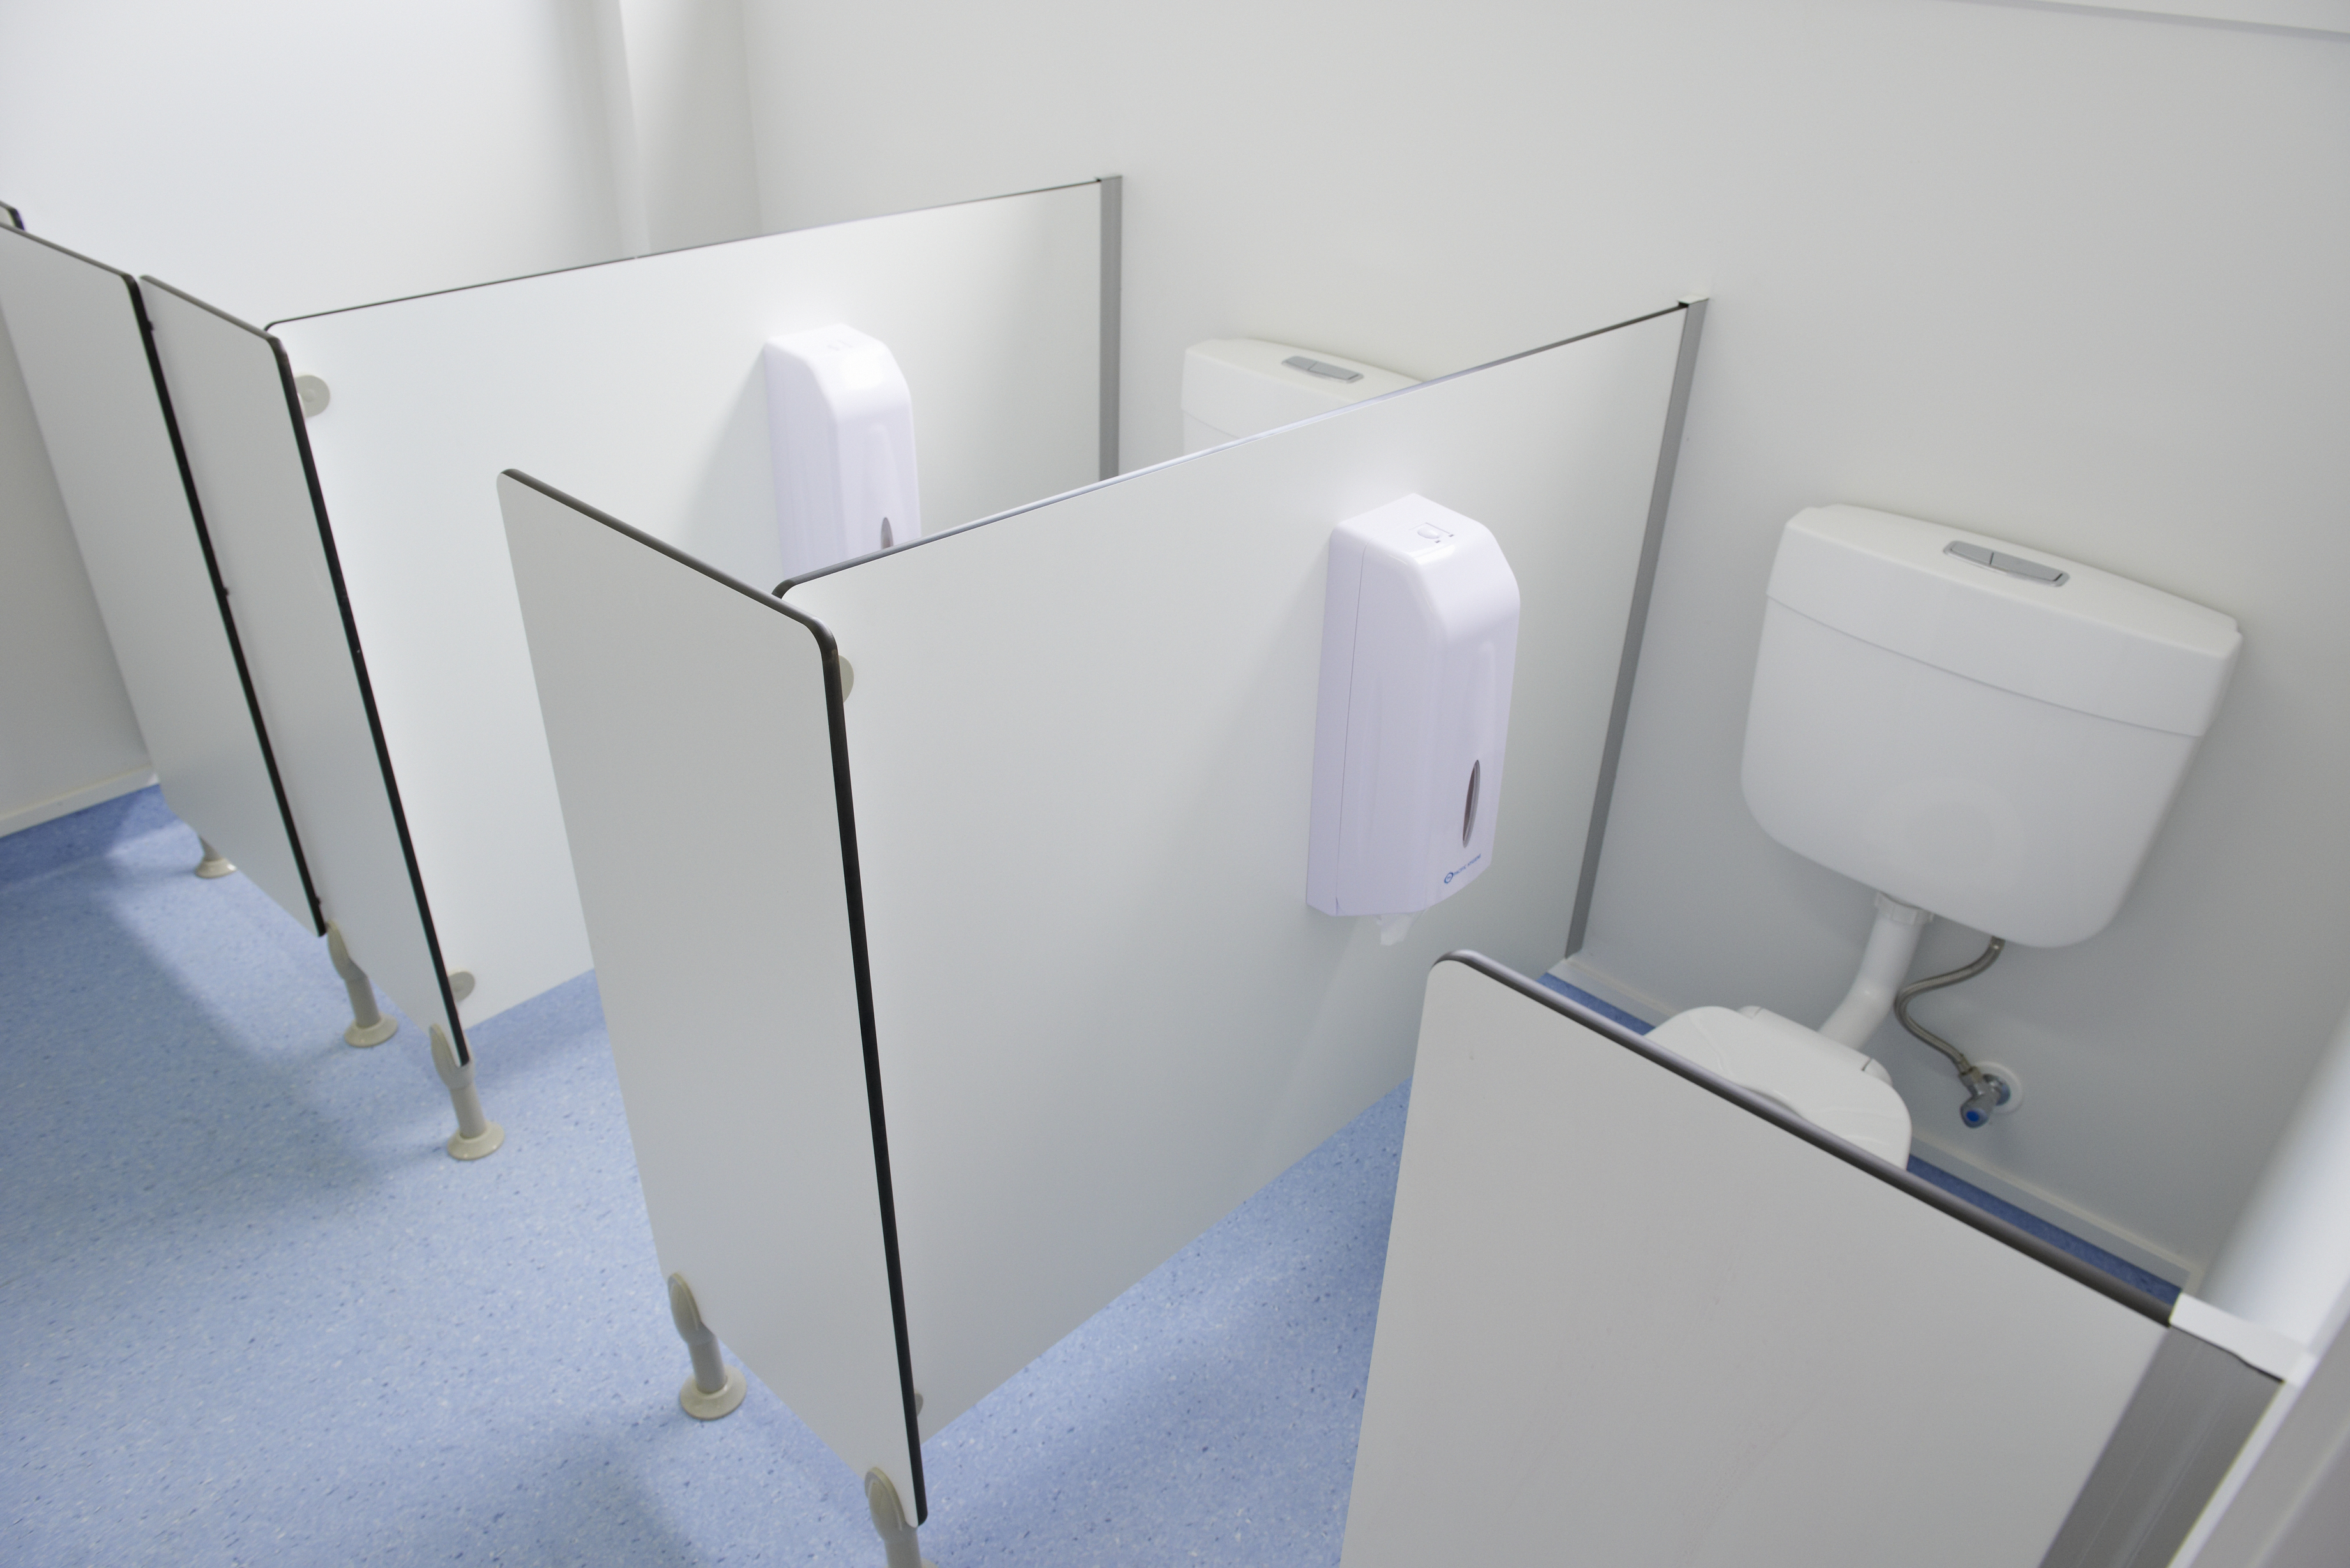 Bathroom Partitions Nz kindycube - resco